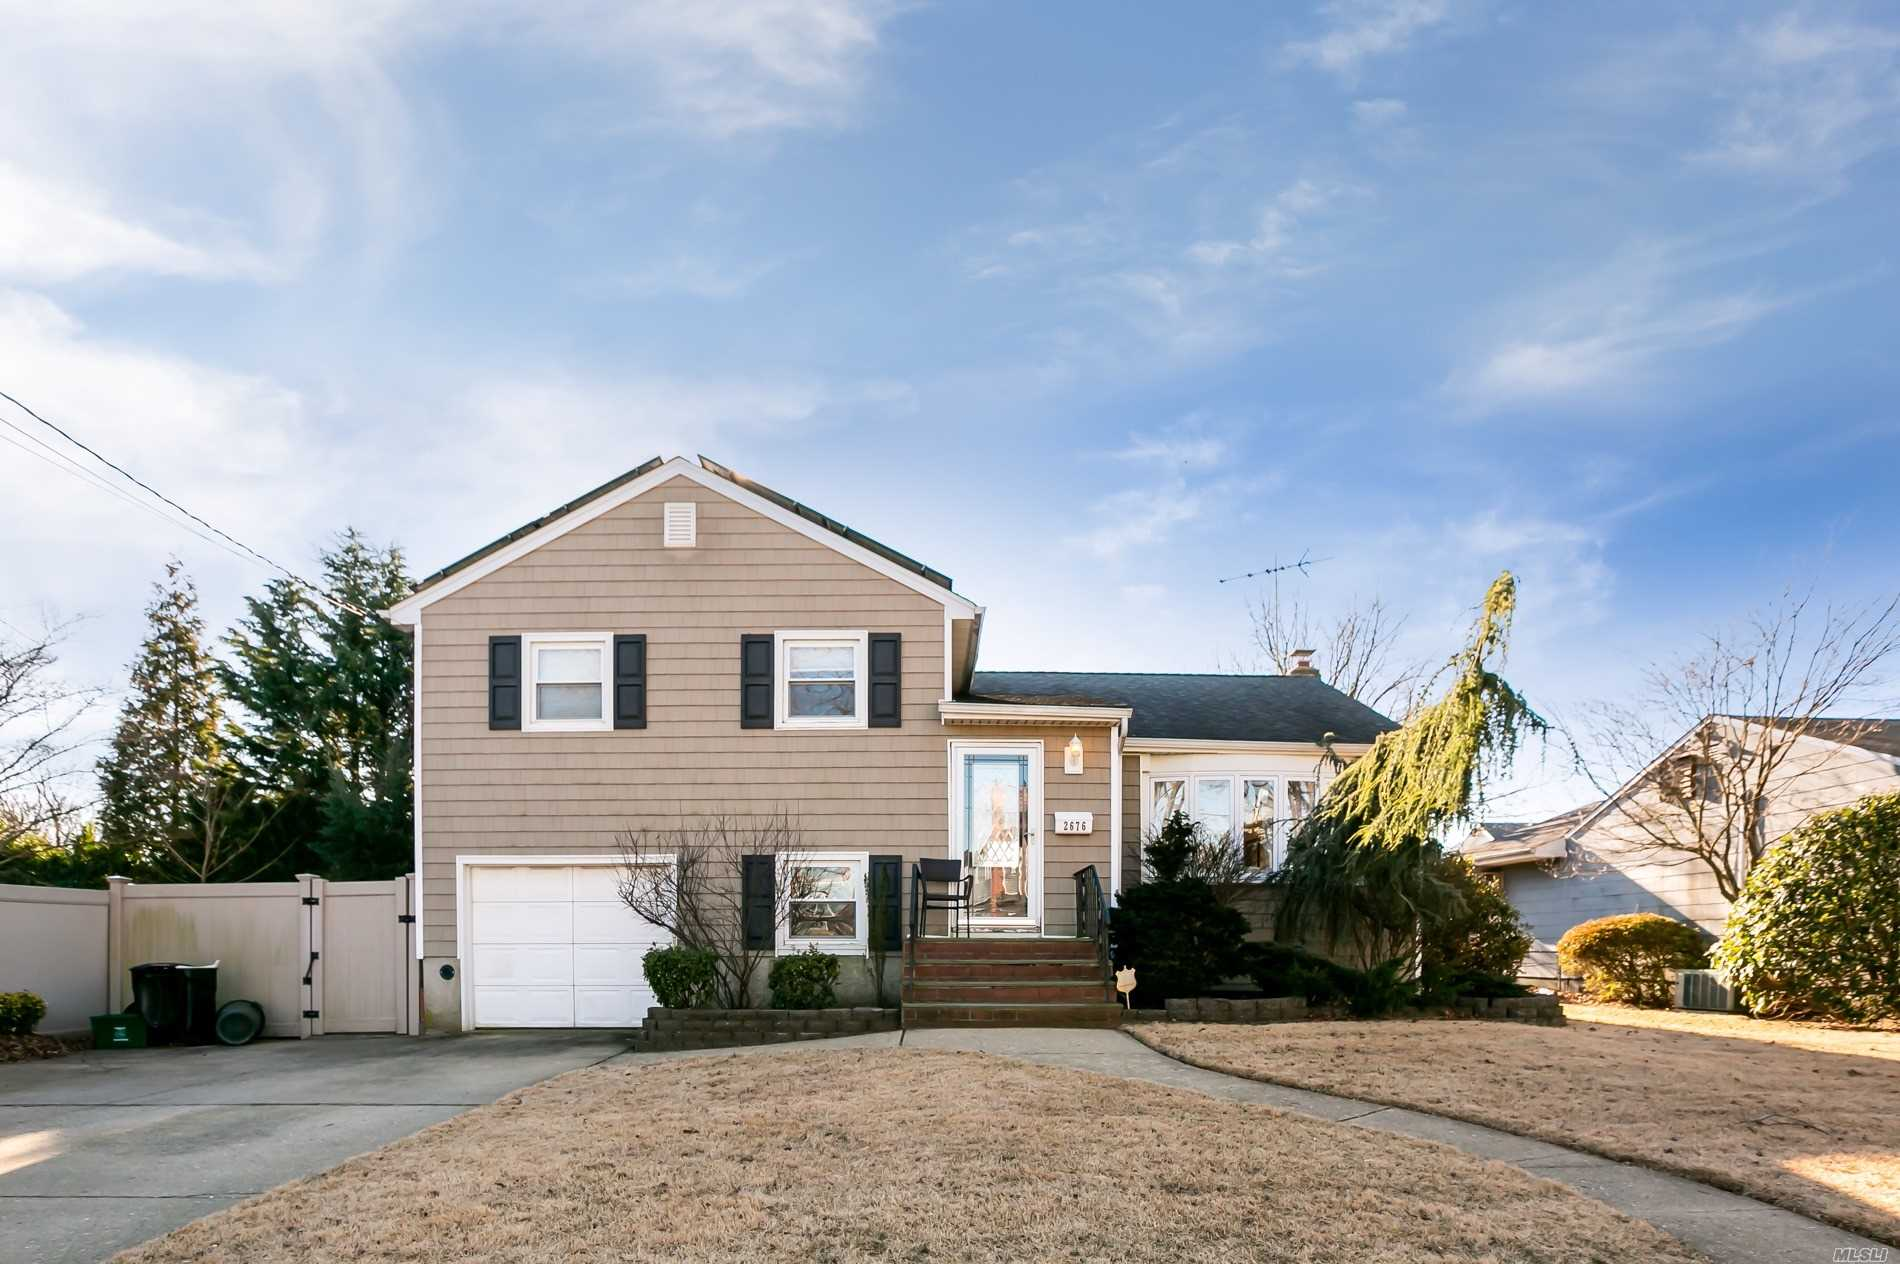 Fabulous Split Level Home On Dead End Street. Living Room, Dining Room, Eat In Kitchen, 3 Bedrooms, 2 New Bathrooms, Den With Ent To Garage, Basement With Outside Ent, Large Yard, Solar Panels, Cac, Gas, Hardwood Flrs, In Ground Sprinklers.